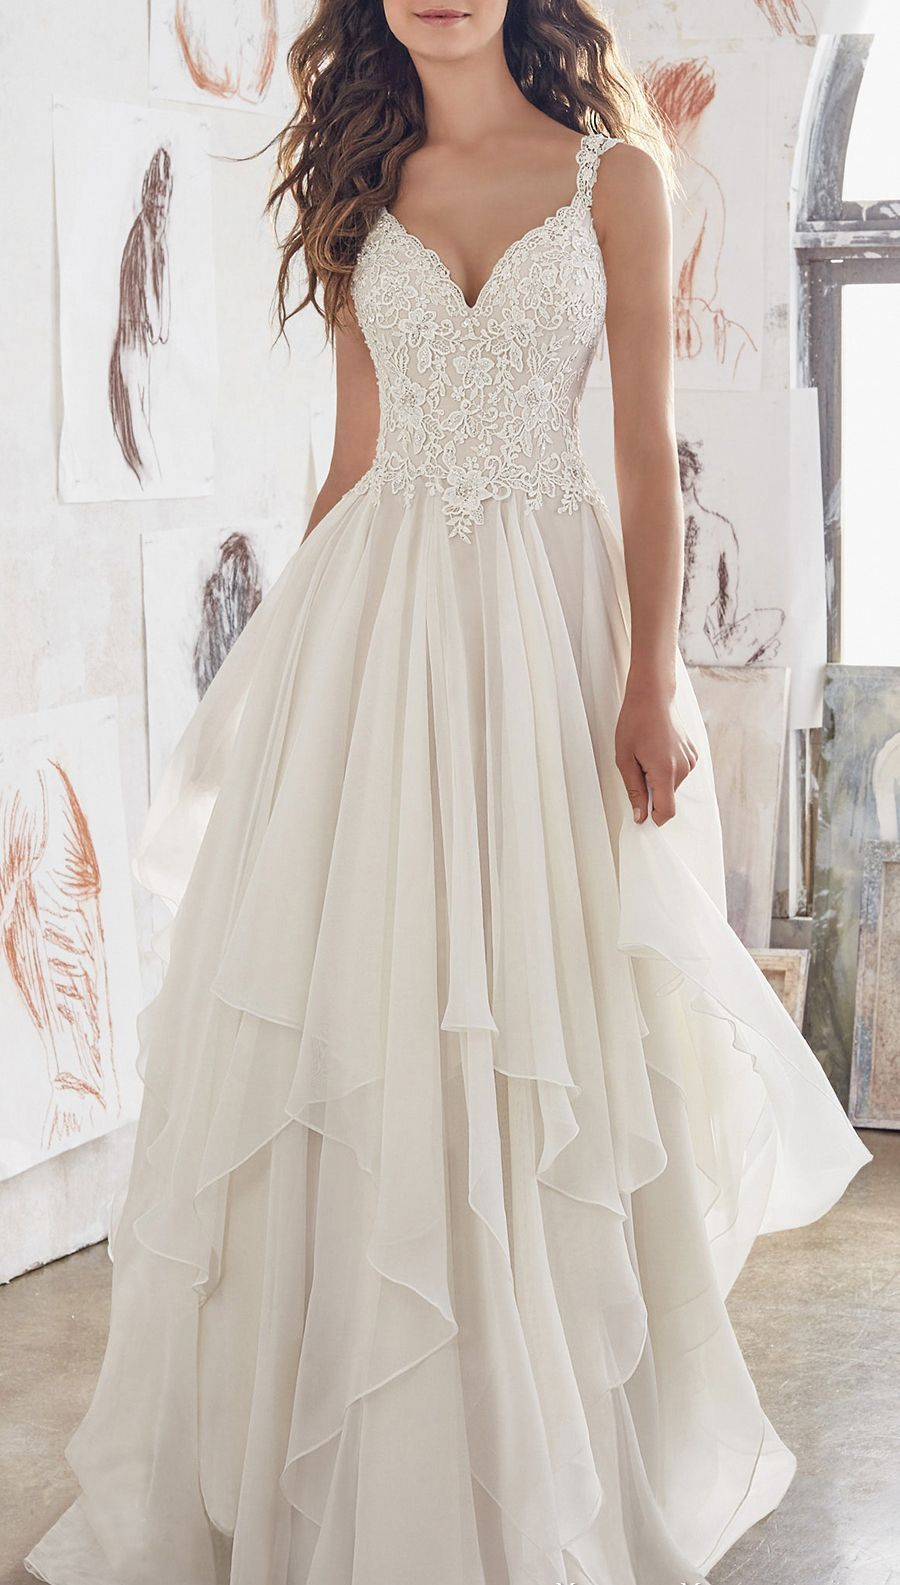 Unique V-Neck Wedding Dress Double shoulder with lace chiffon A-Line Bridal Gown